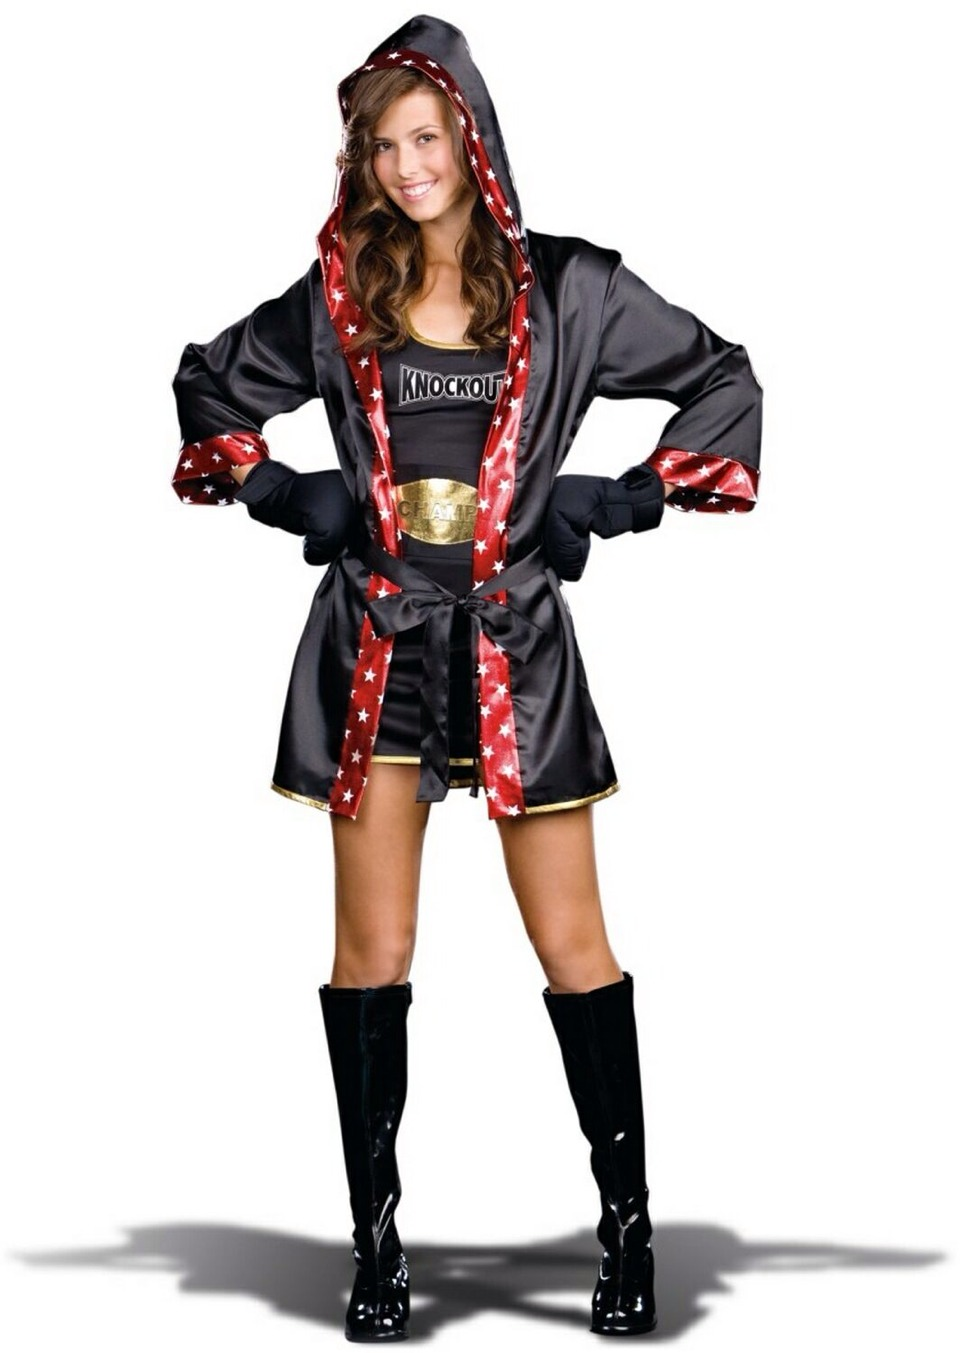 Knock them out with this cute costume. Show how tough us girls really are by being the boxer you have always wanted to be